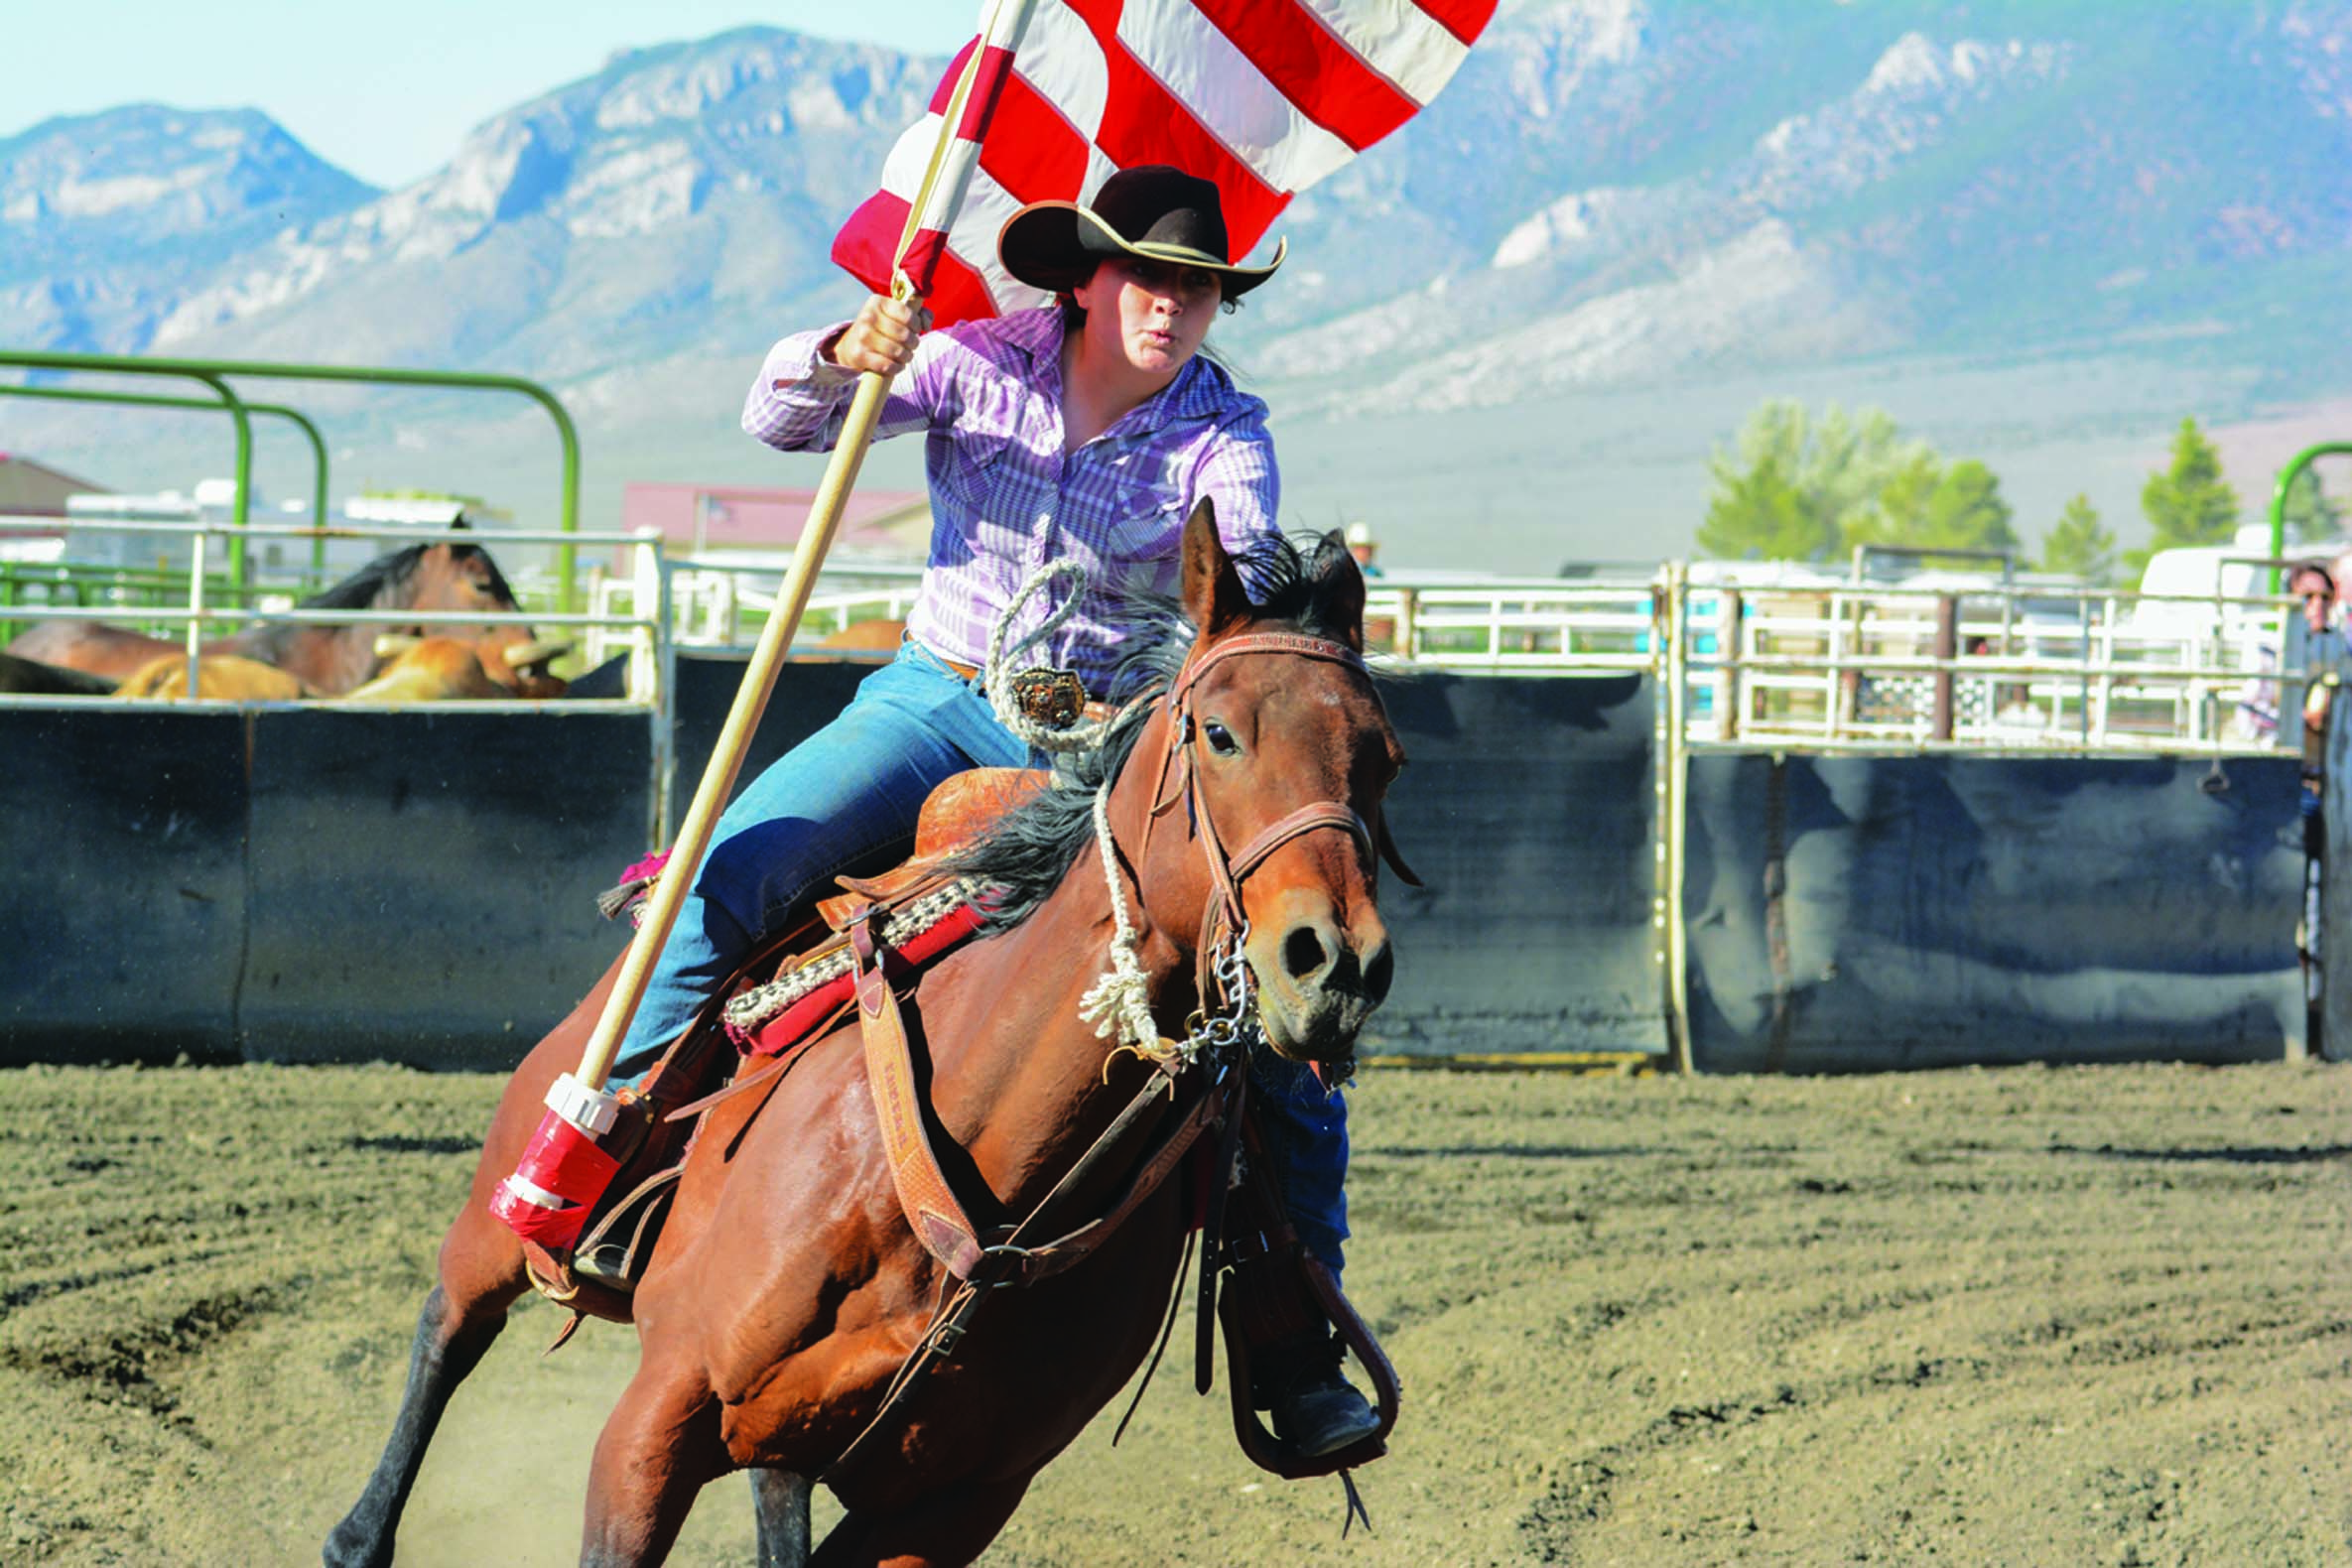 Club Working Hard To Put On Special State Rodeo The